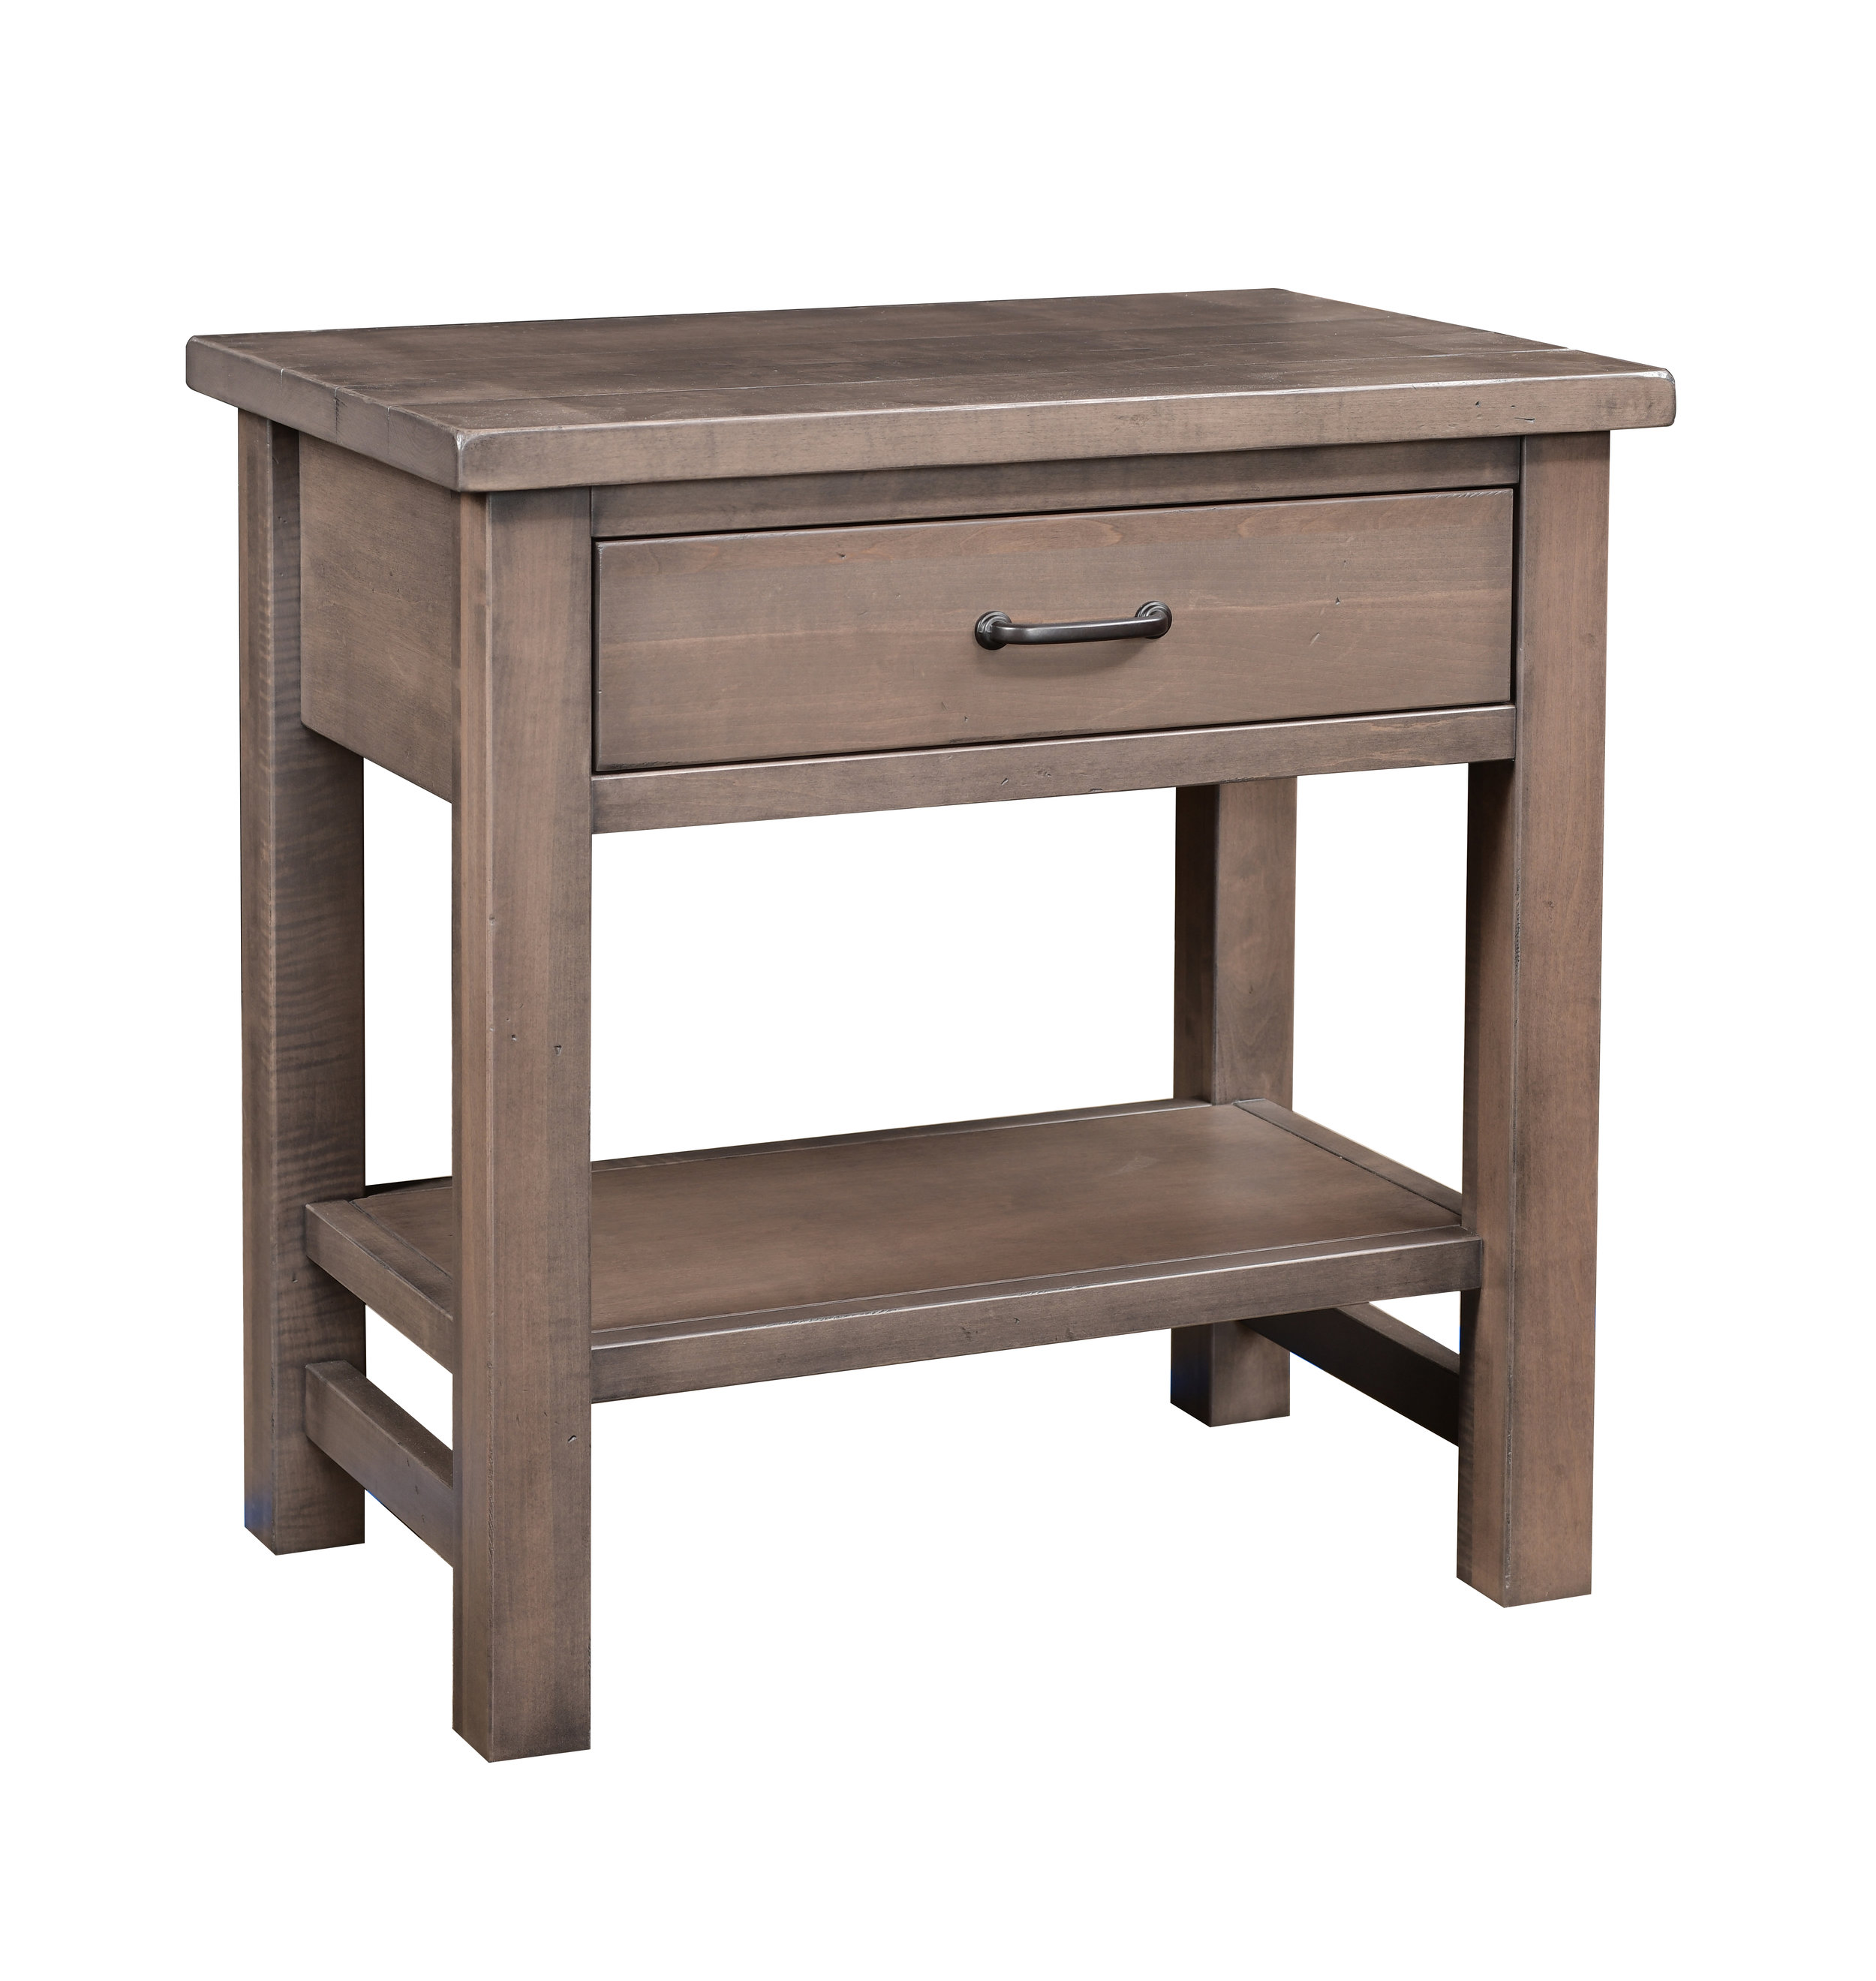 CA-543 Night Stand.jpg